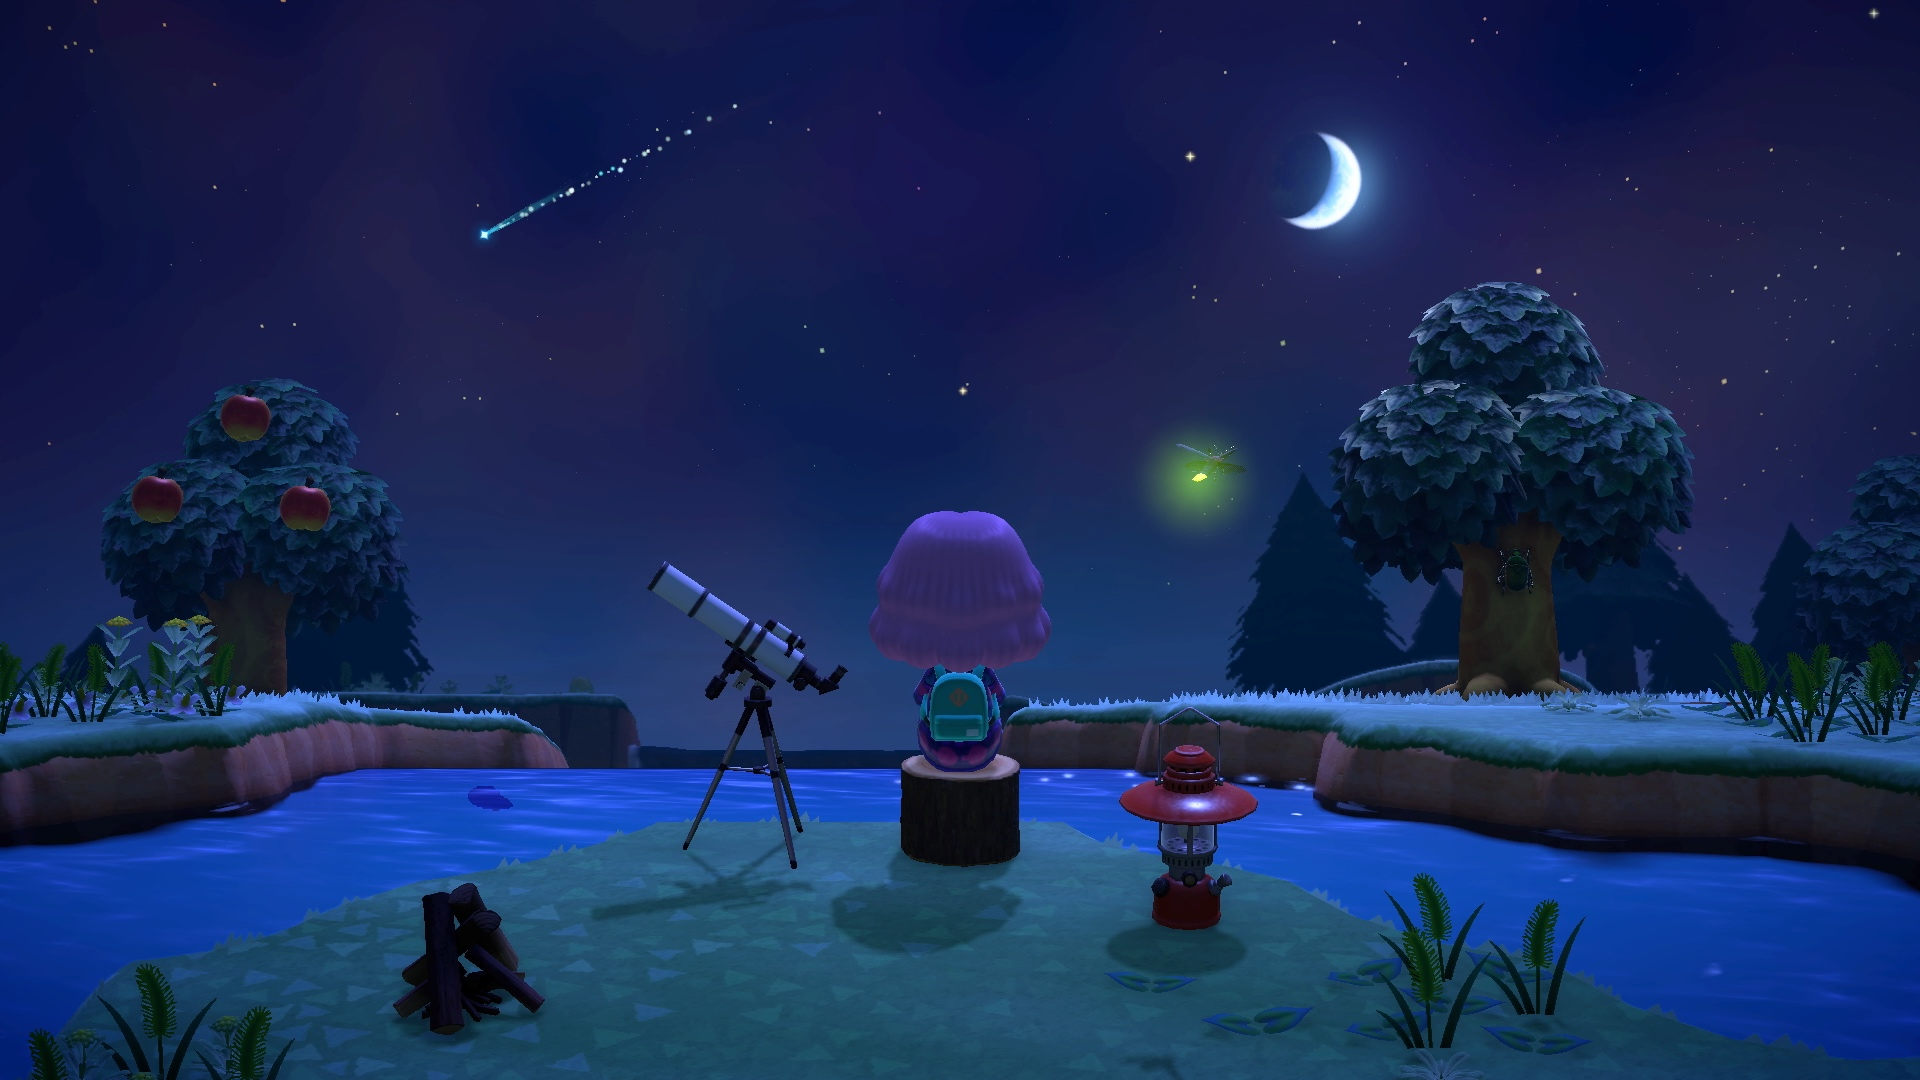 A villager gazes out at a starry nighttime sky by the river in a screenshot from Animal Crossing; New Horizons.